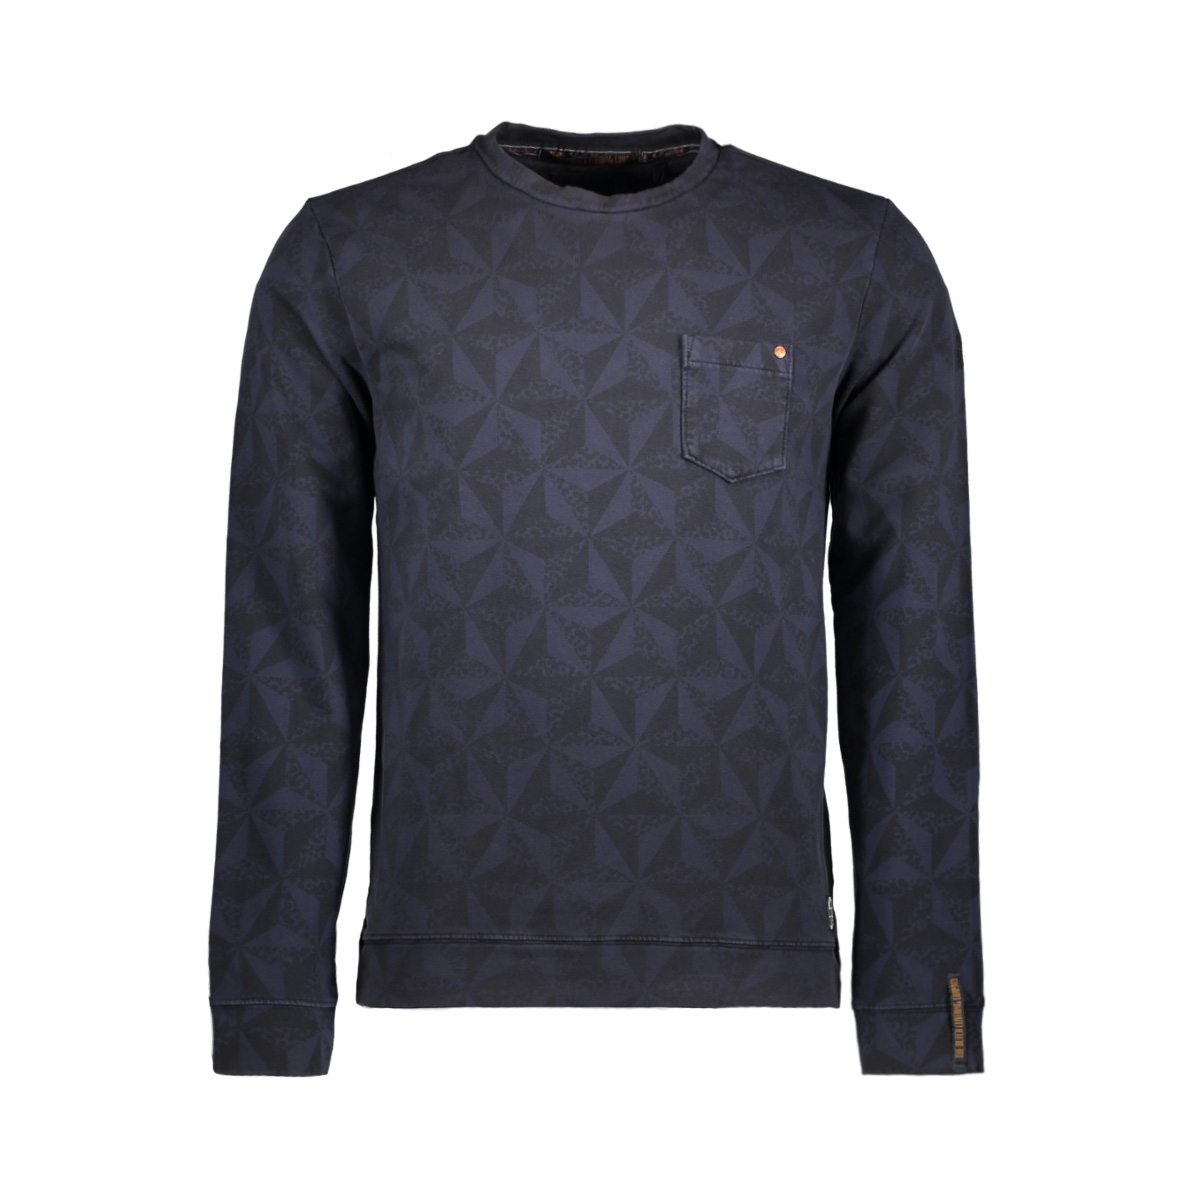 82110901 no-excess sweater shadow blue